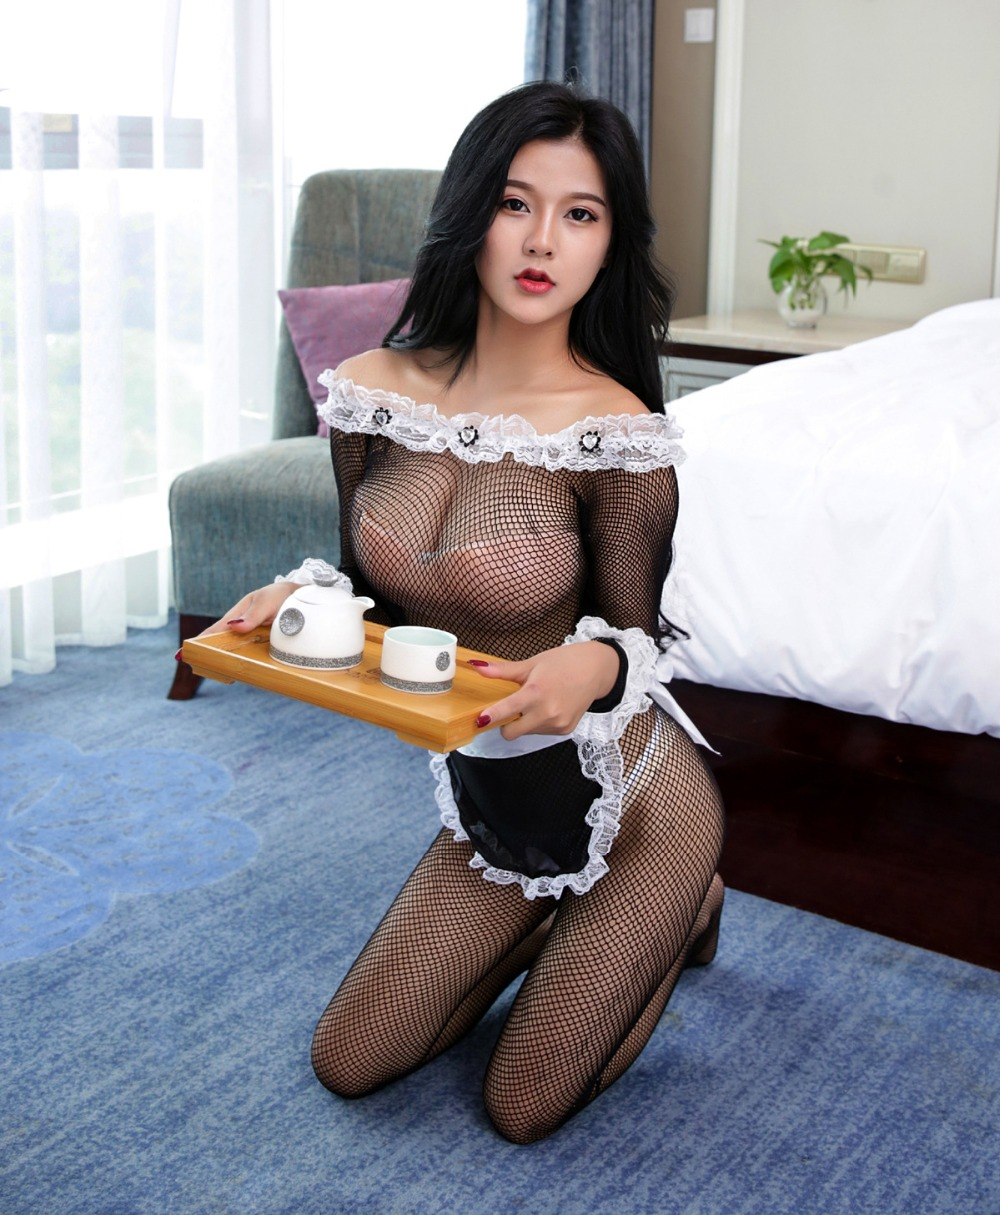 Maid Outfit Uniform Sexy Costumes Sex-Games Lolita Erotic Adult Hot-Sexy Temptation Black